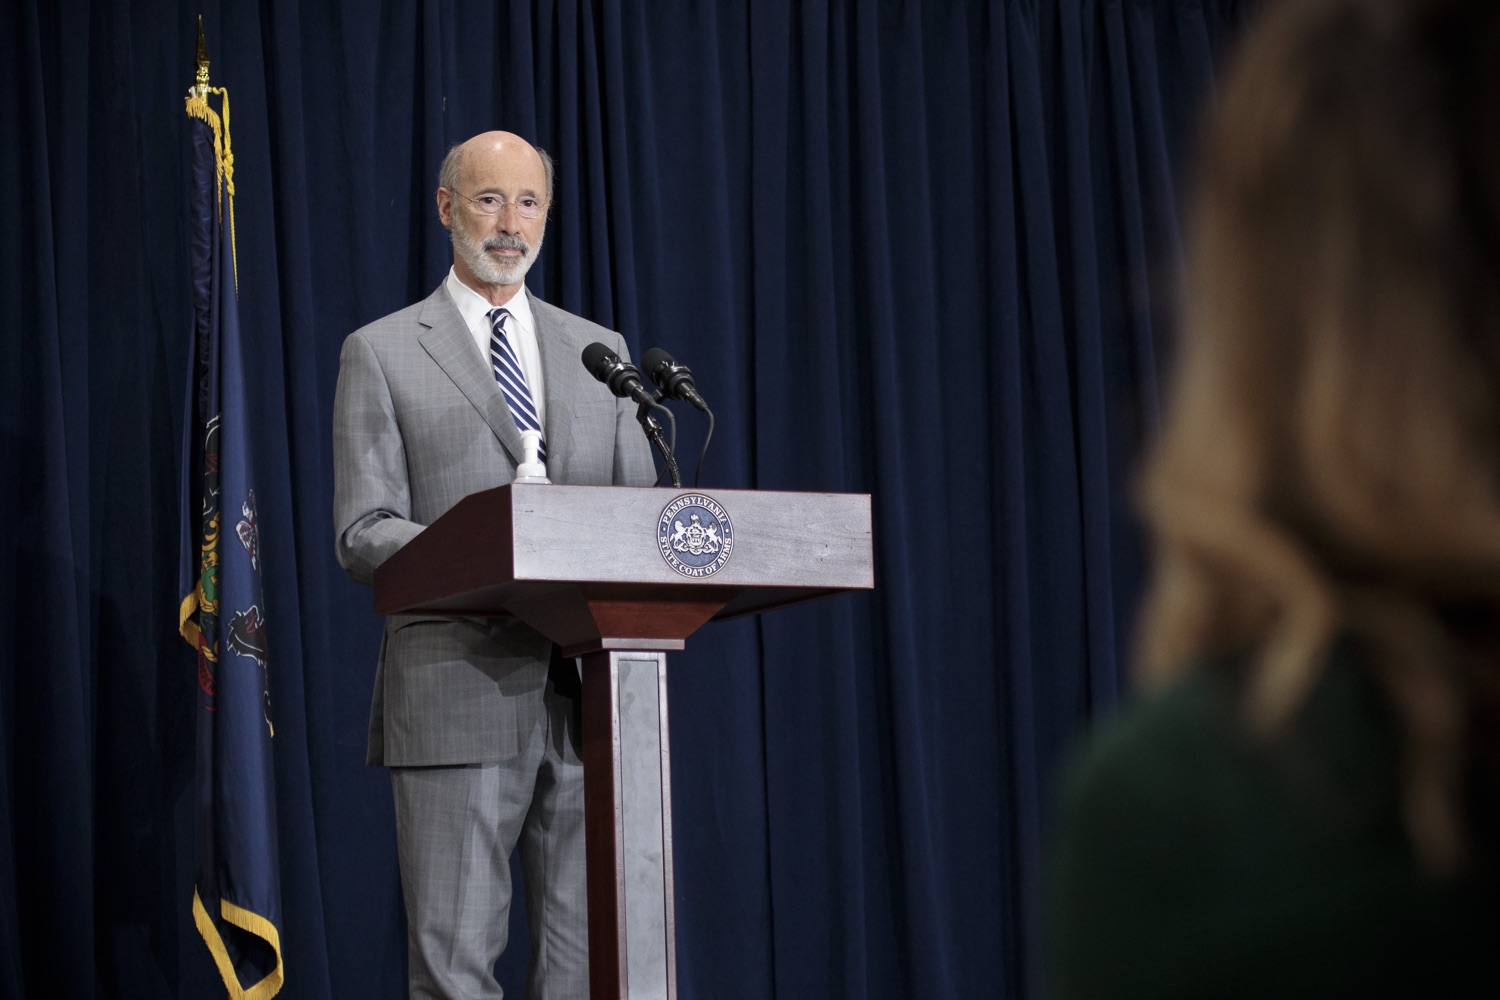 """<a href=""""https://filesource.wostreaming.net/commonwealthofpa/photo/18380_gov_election_update_dz_014.jpg"""" target=""""_blank"""">⇣Download Photo<br></a>Pennsylvania Governor Tom Wolf speaks to the press.  Governor Tom Wolf and Pennsylvania Secretary of State Kathy Boockvar gave an update on the election process in Pennsylvania. NOVEMBER 04, 2020 - HARRISBURG, PA"""